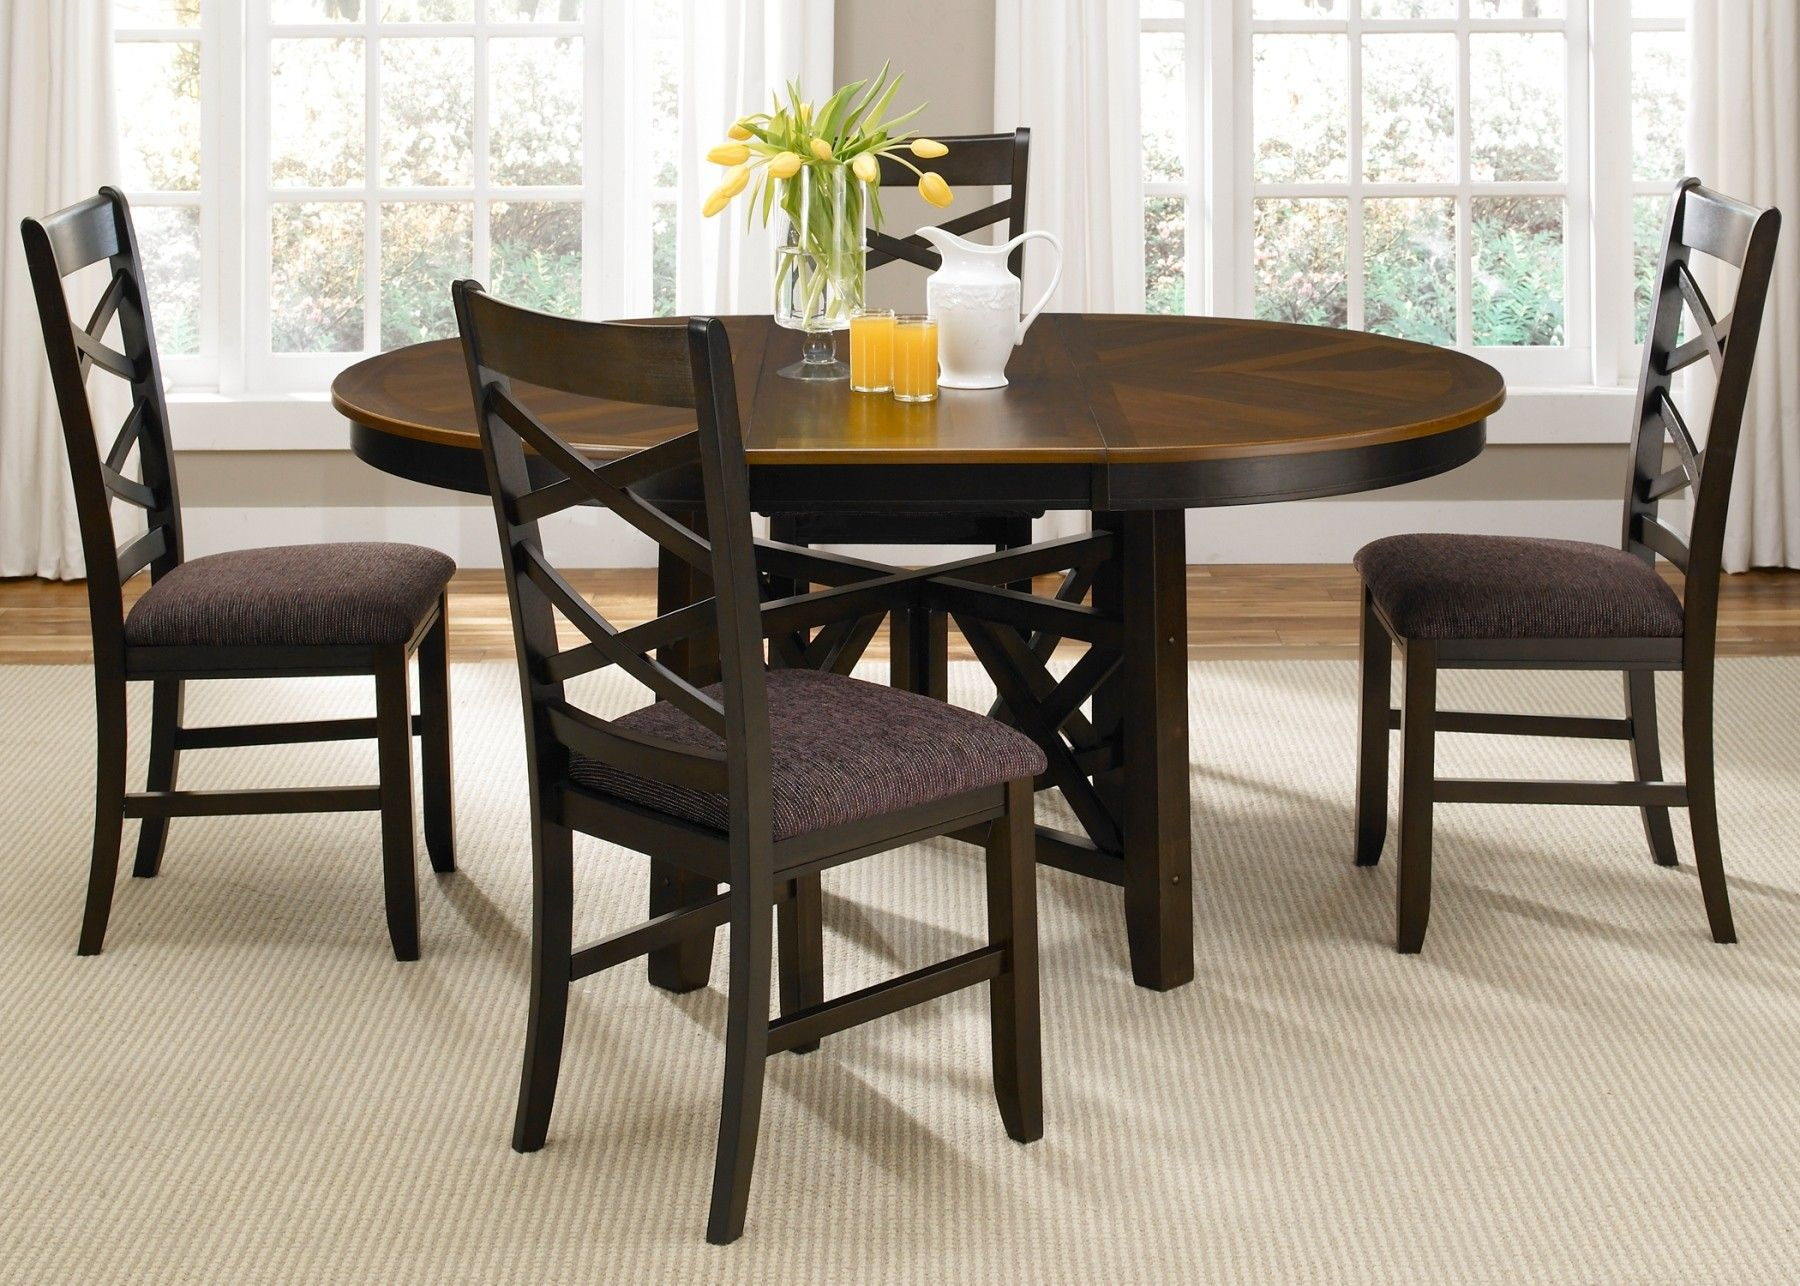 41+ Liberty dining table and chairs Trend